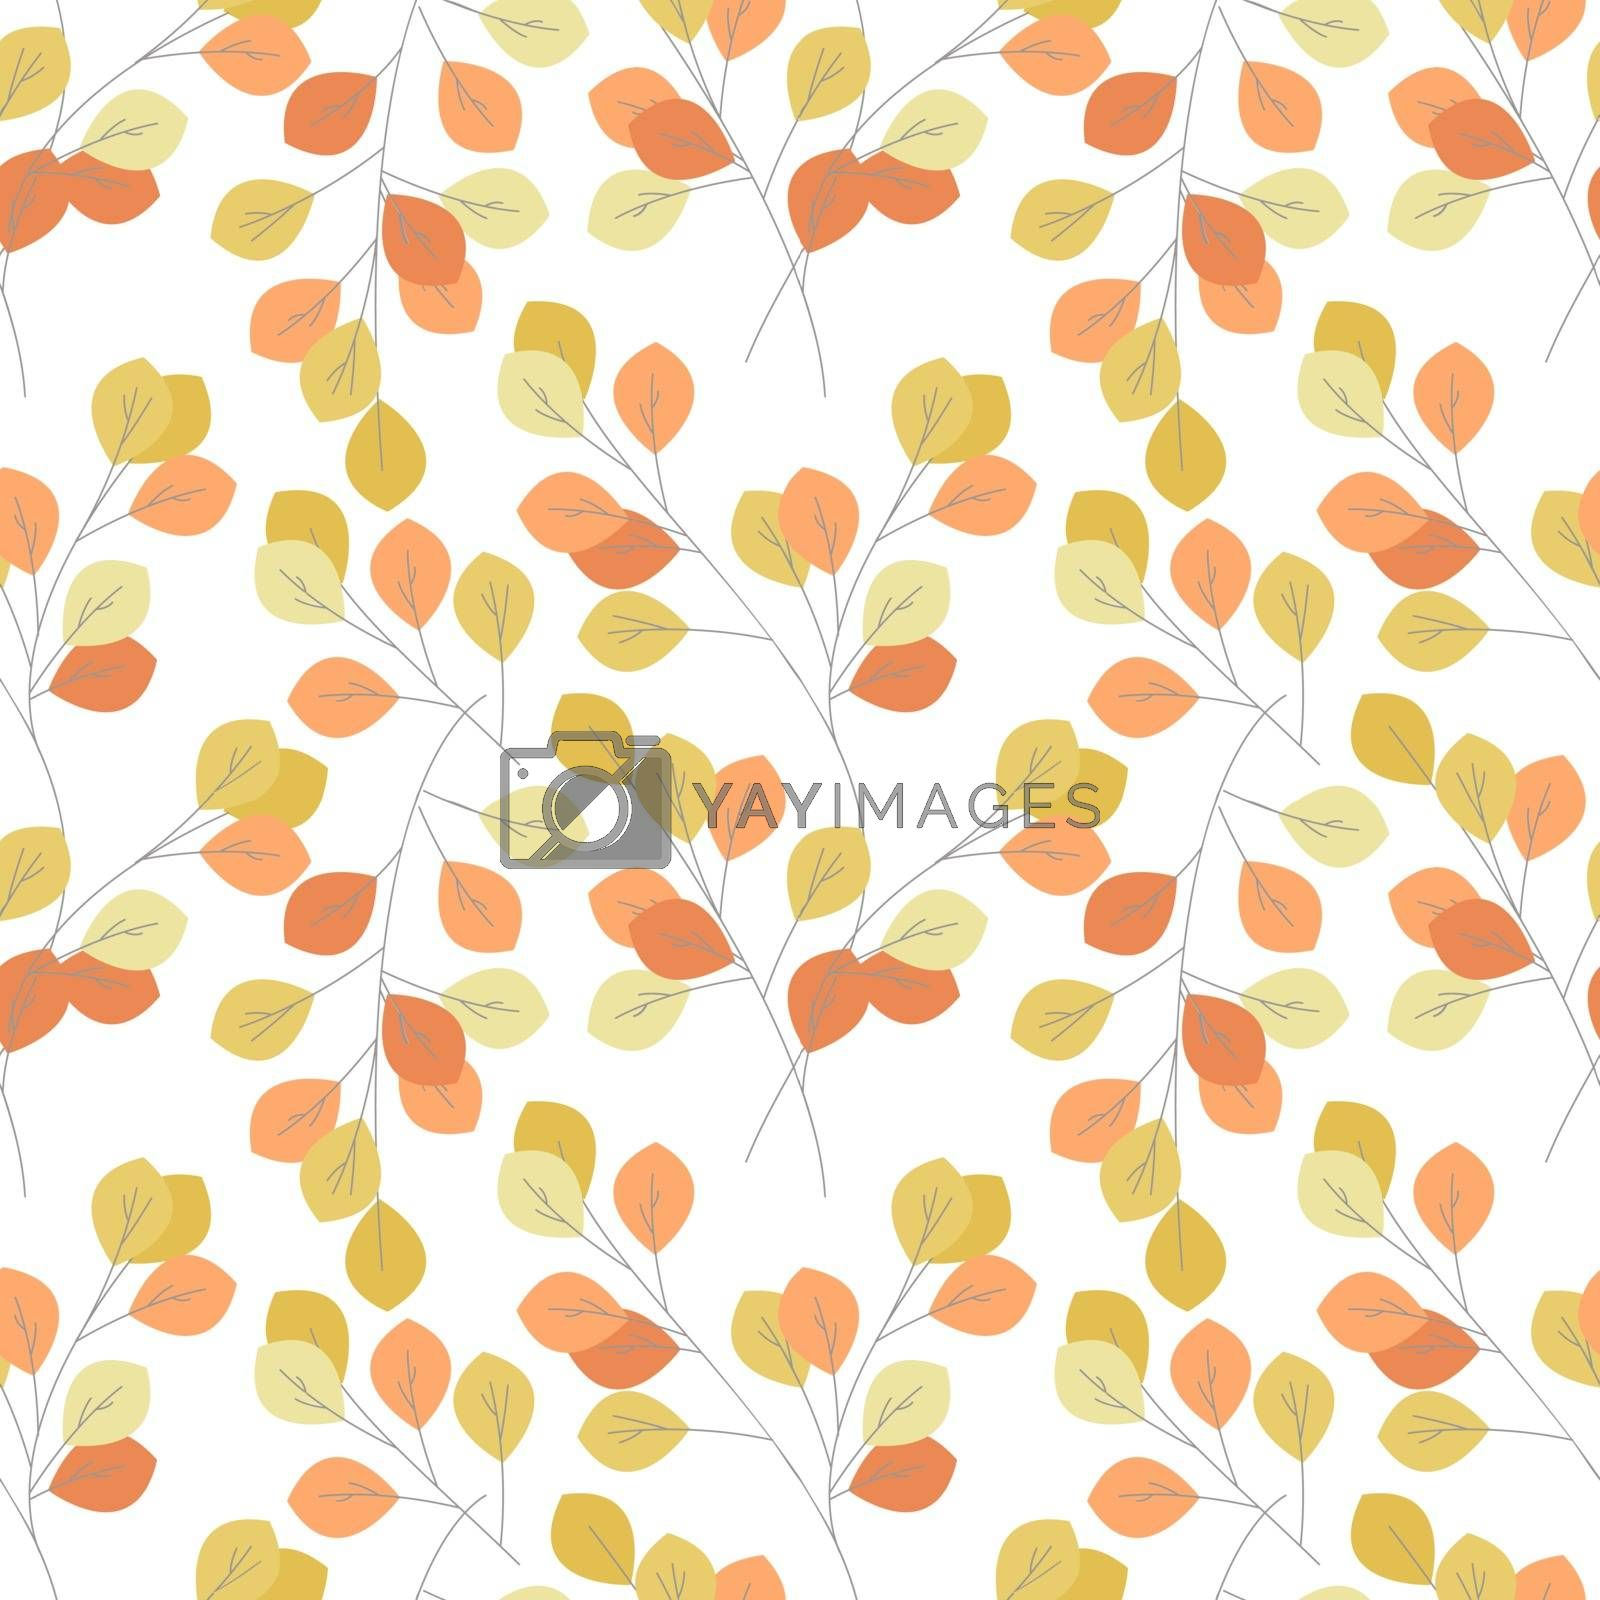 Vector illustration of seamless pattern of autumn leaves. Natural background